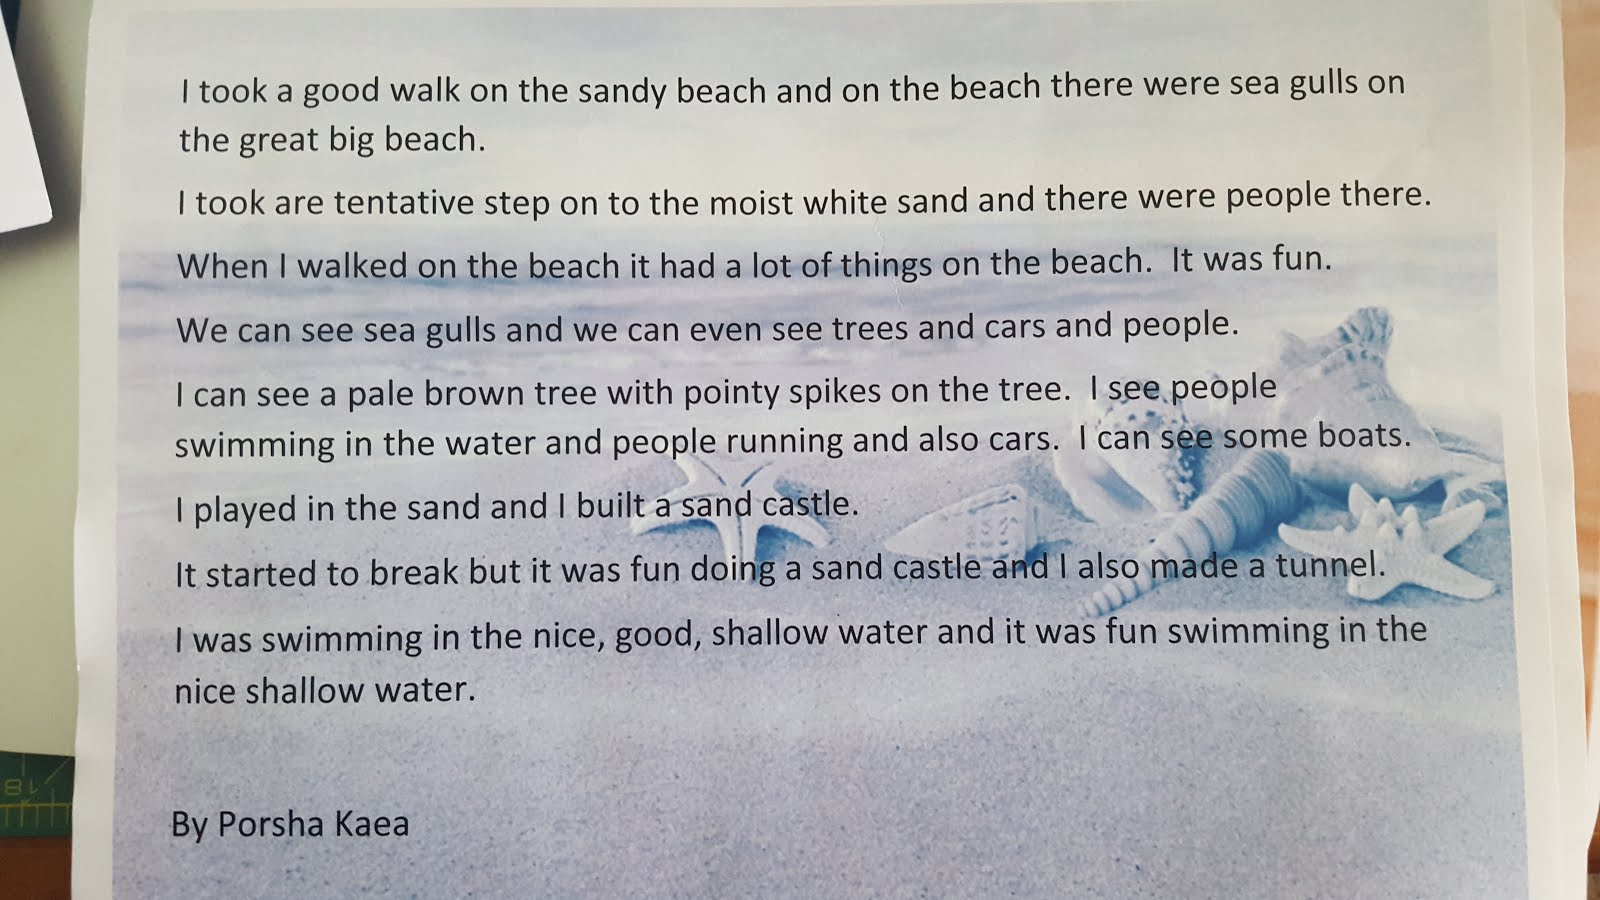 descriptive writing about a beach My favorite thing to do was build gigantic sand castles on the beach descriptive essay: a beautiful paradise descriptive essays, descriptive writing] 549.